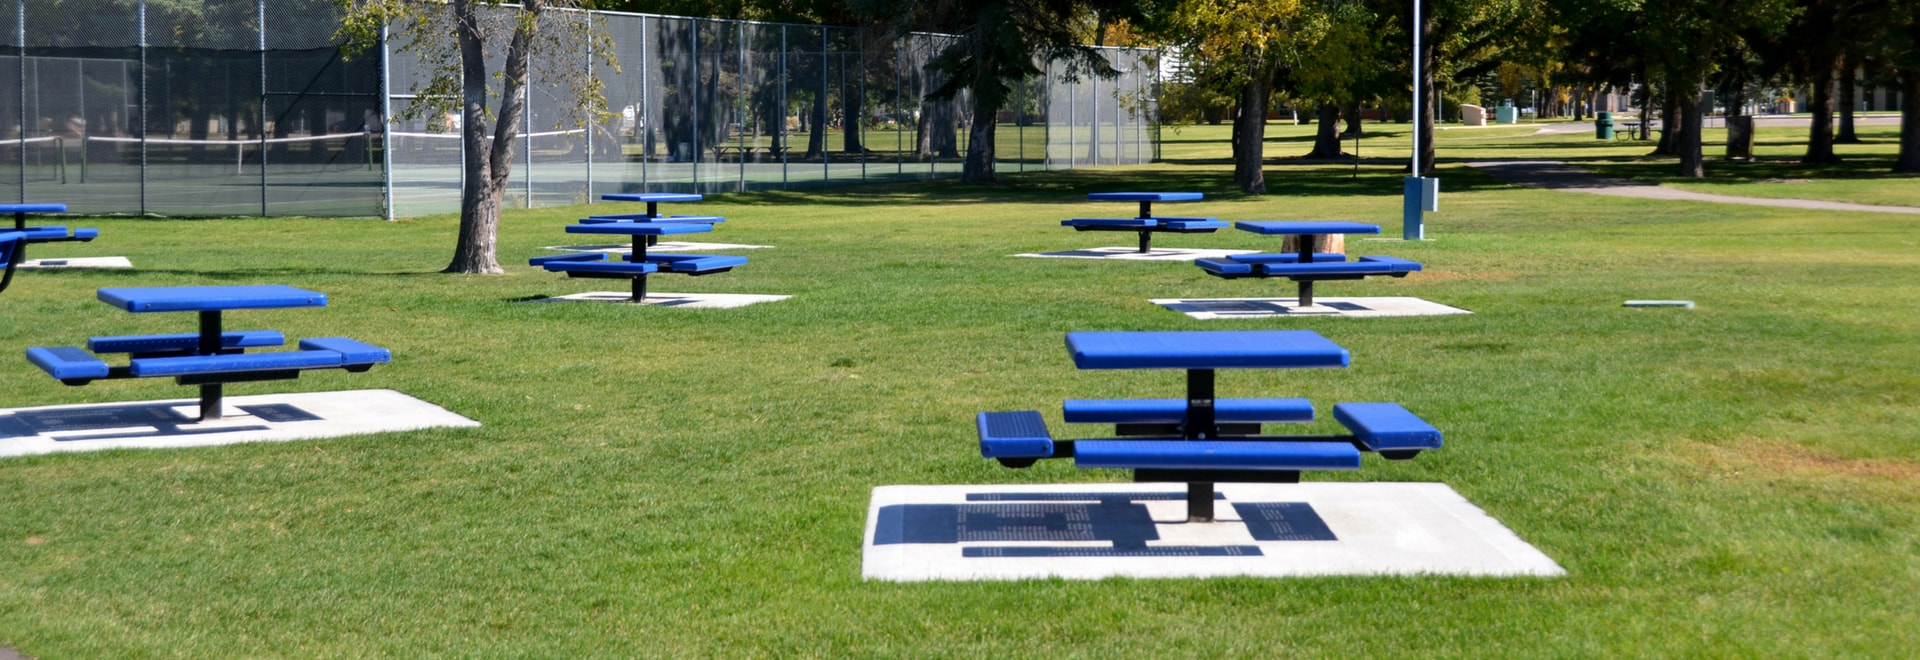 picnic tables in the park